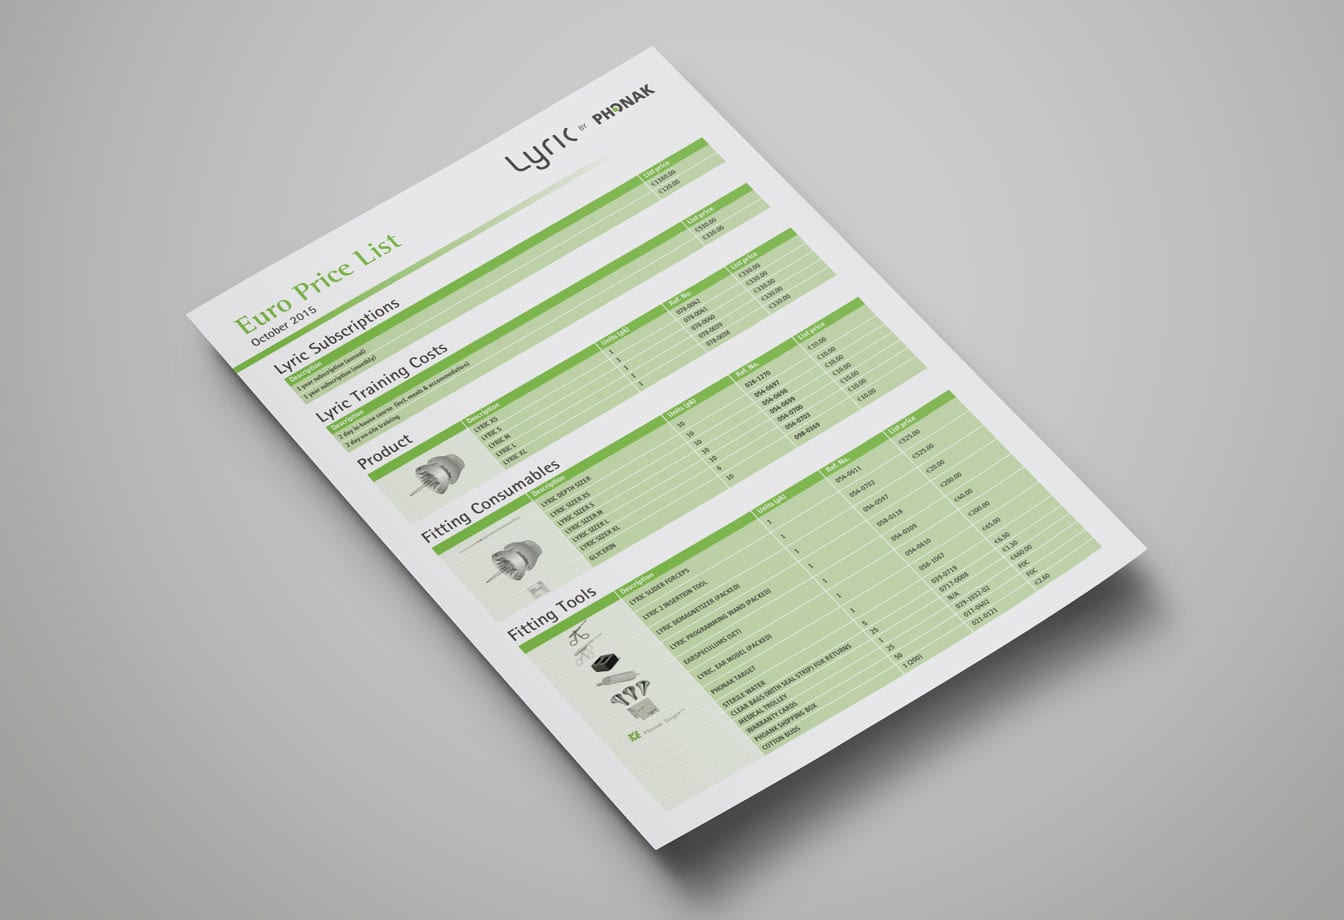 phonak price list designs